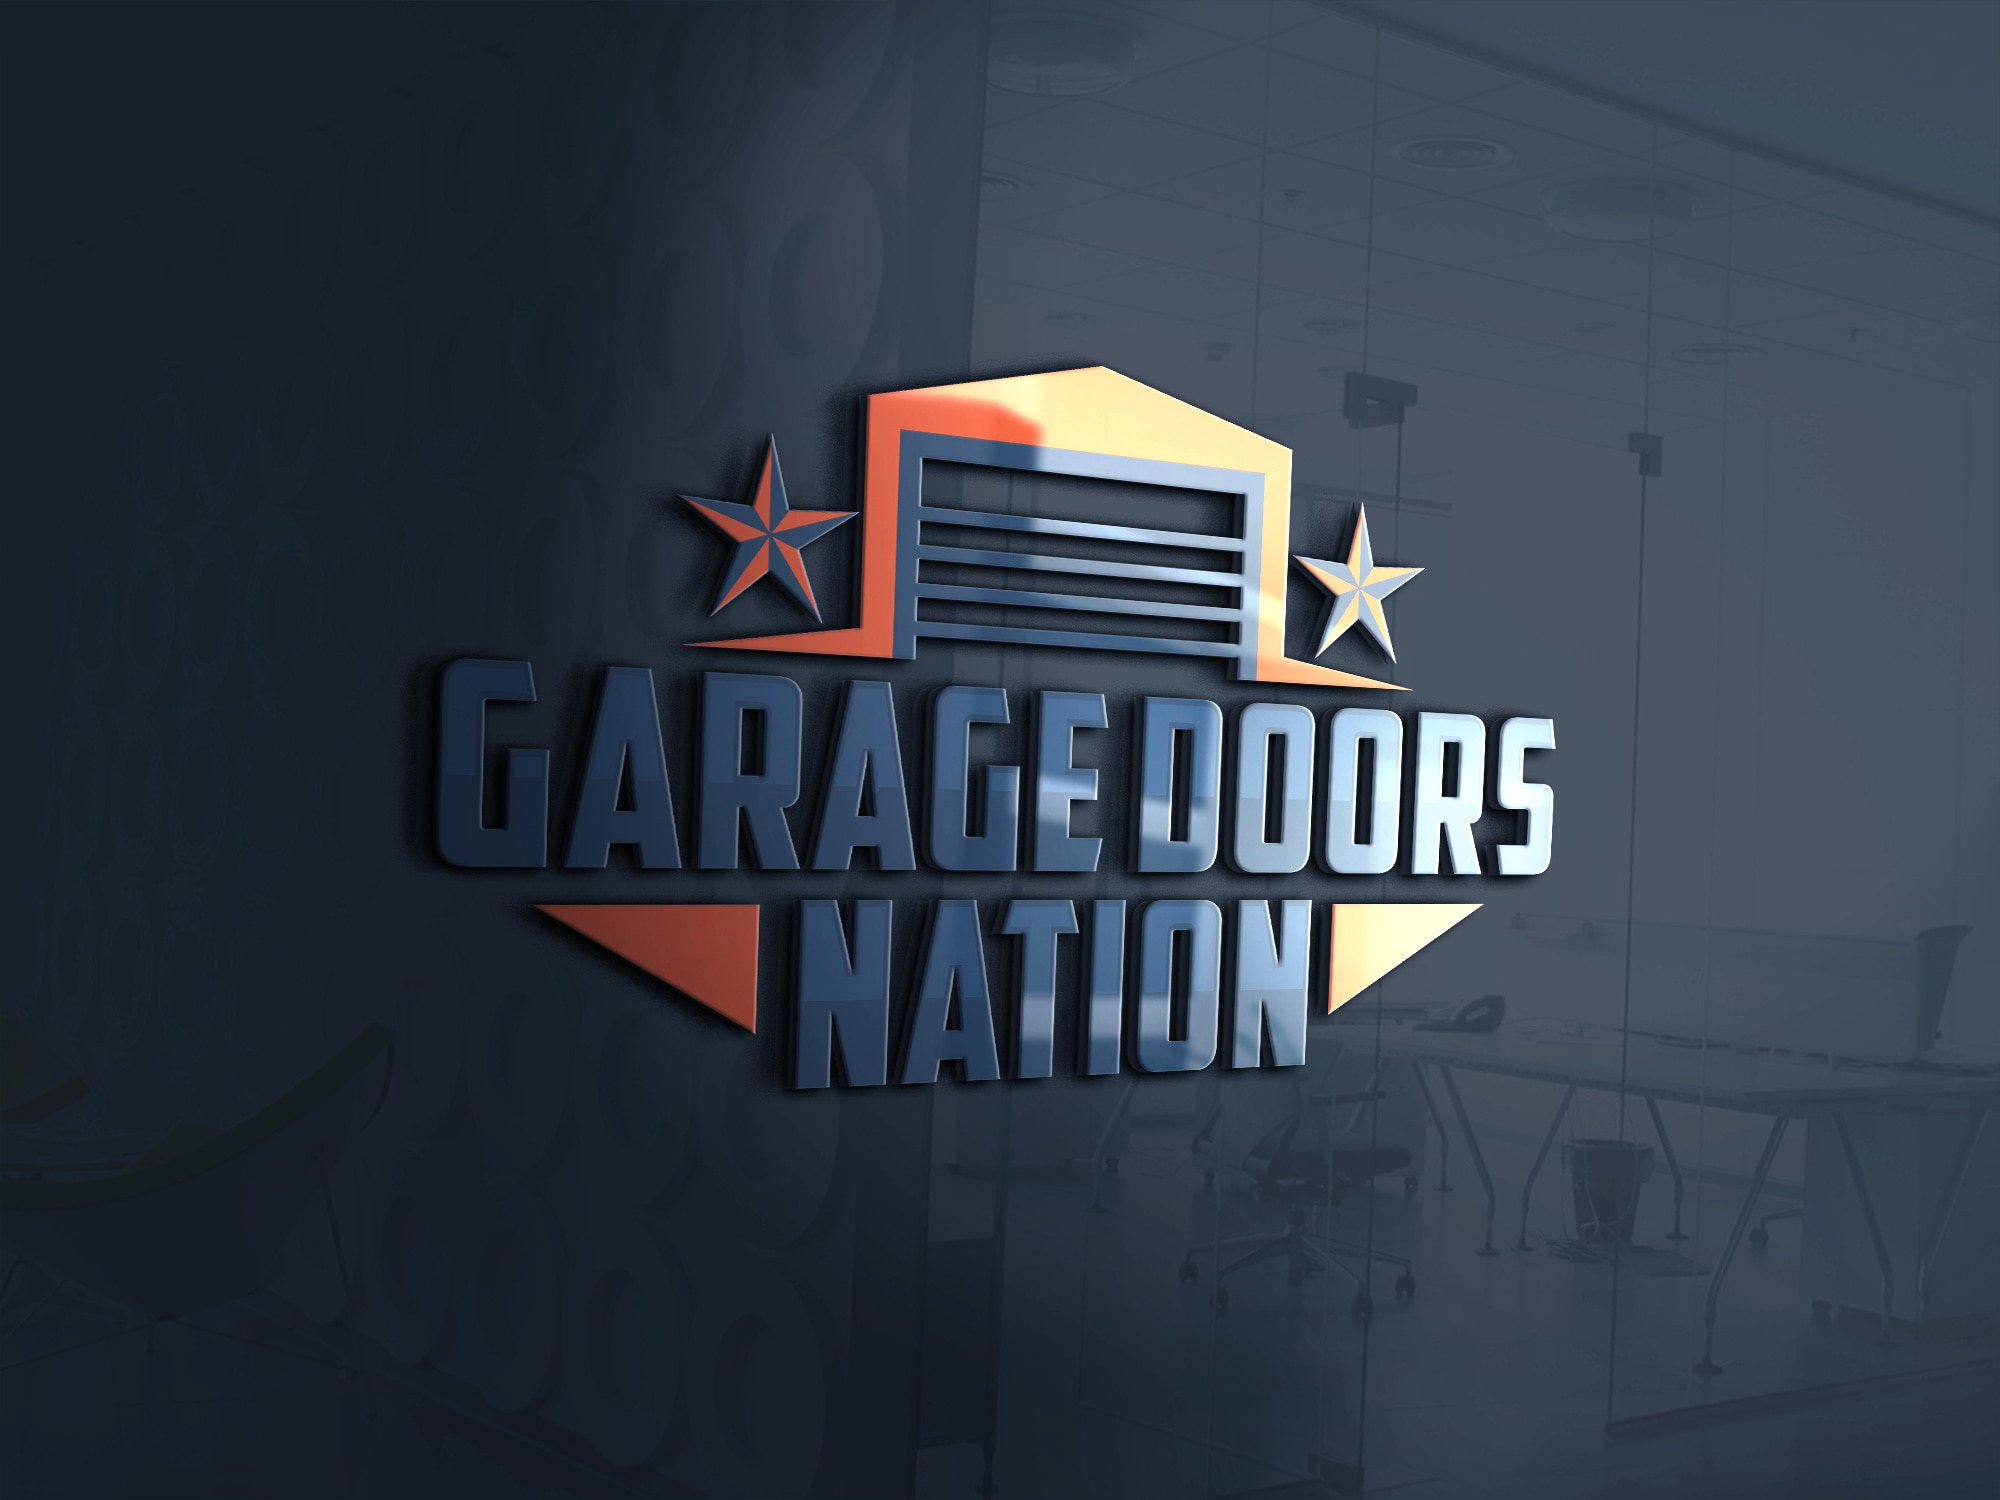 Garage Doors Nation logo